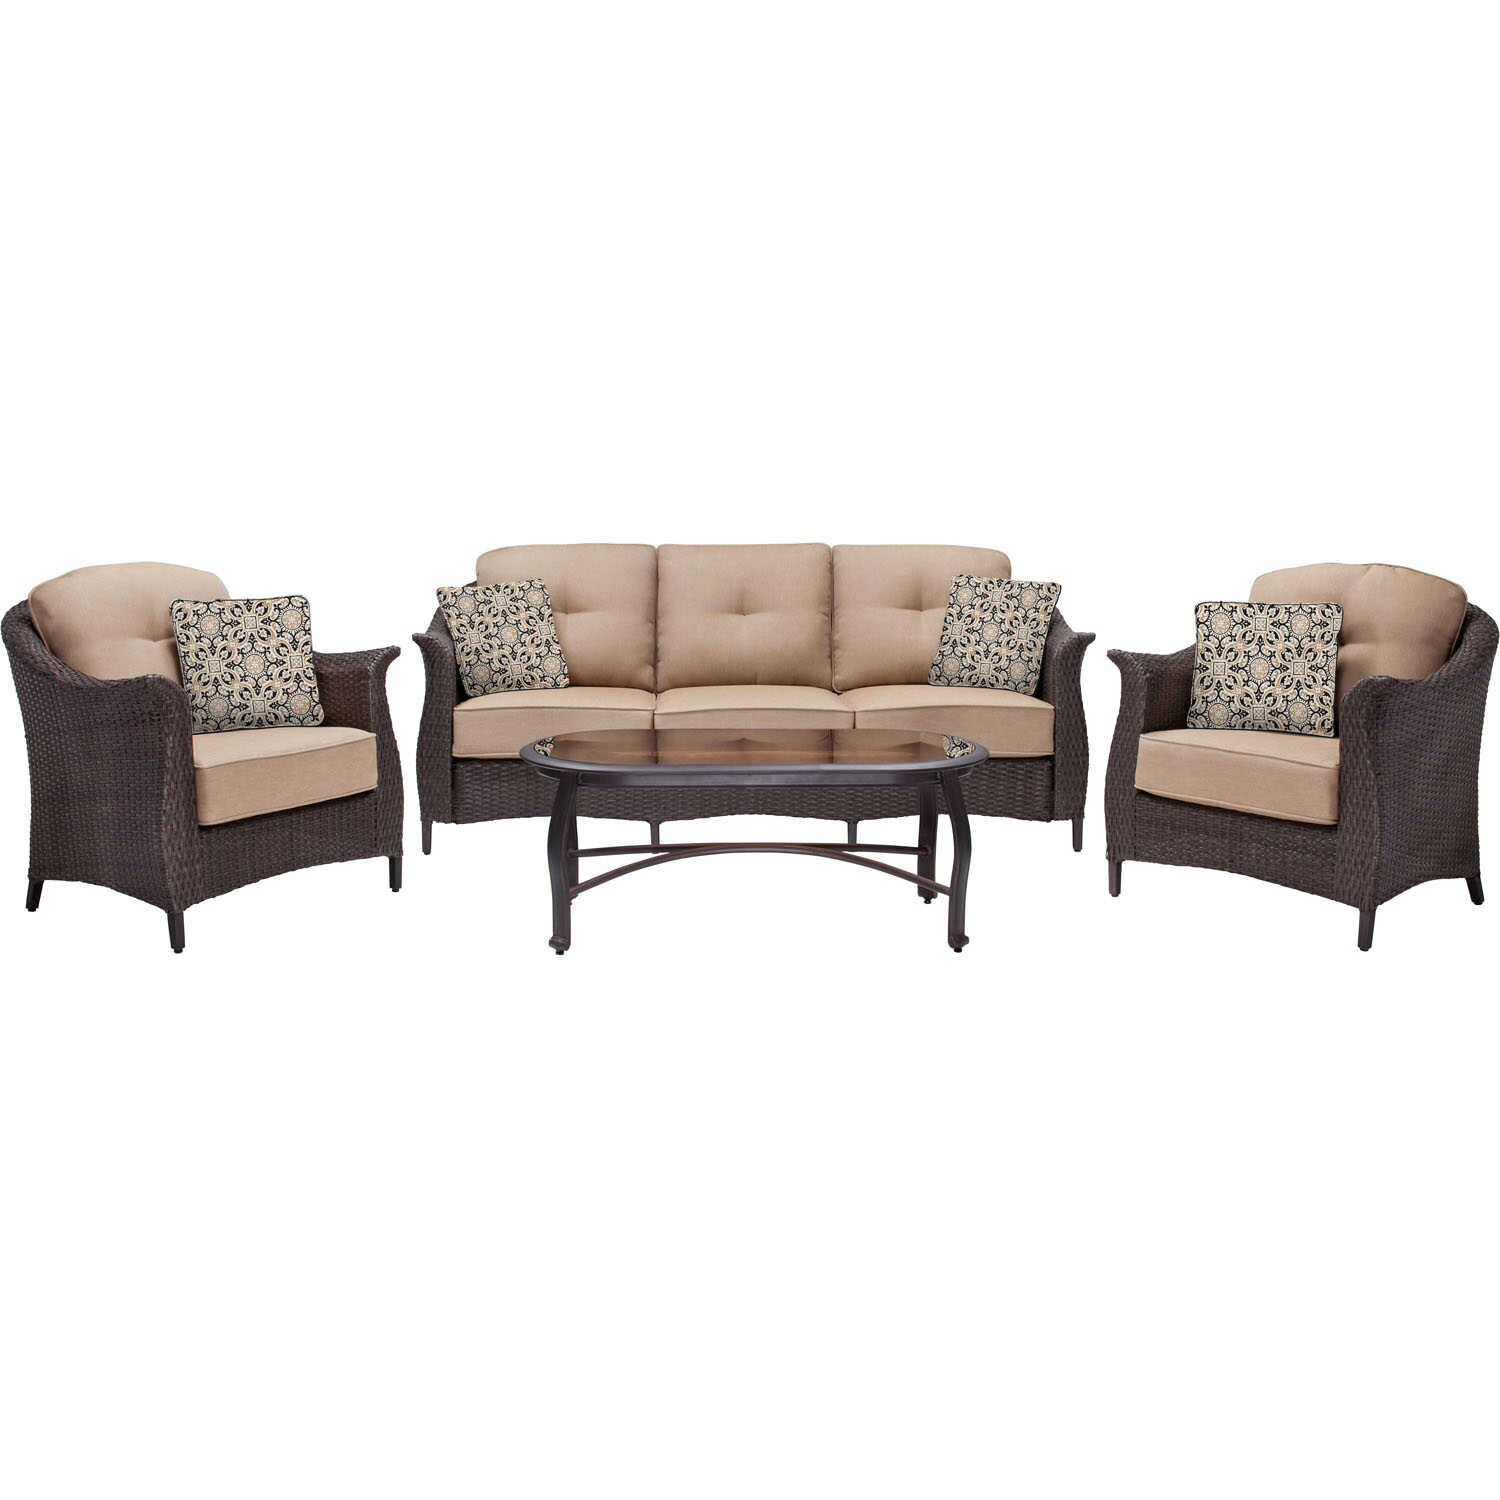 Hanover  Gramercy  4 pc. Java  Steel  Patio Set  Country Cork